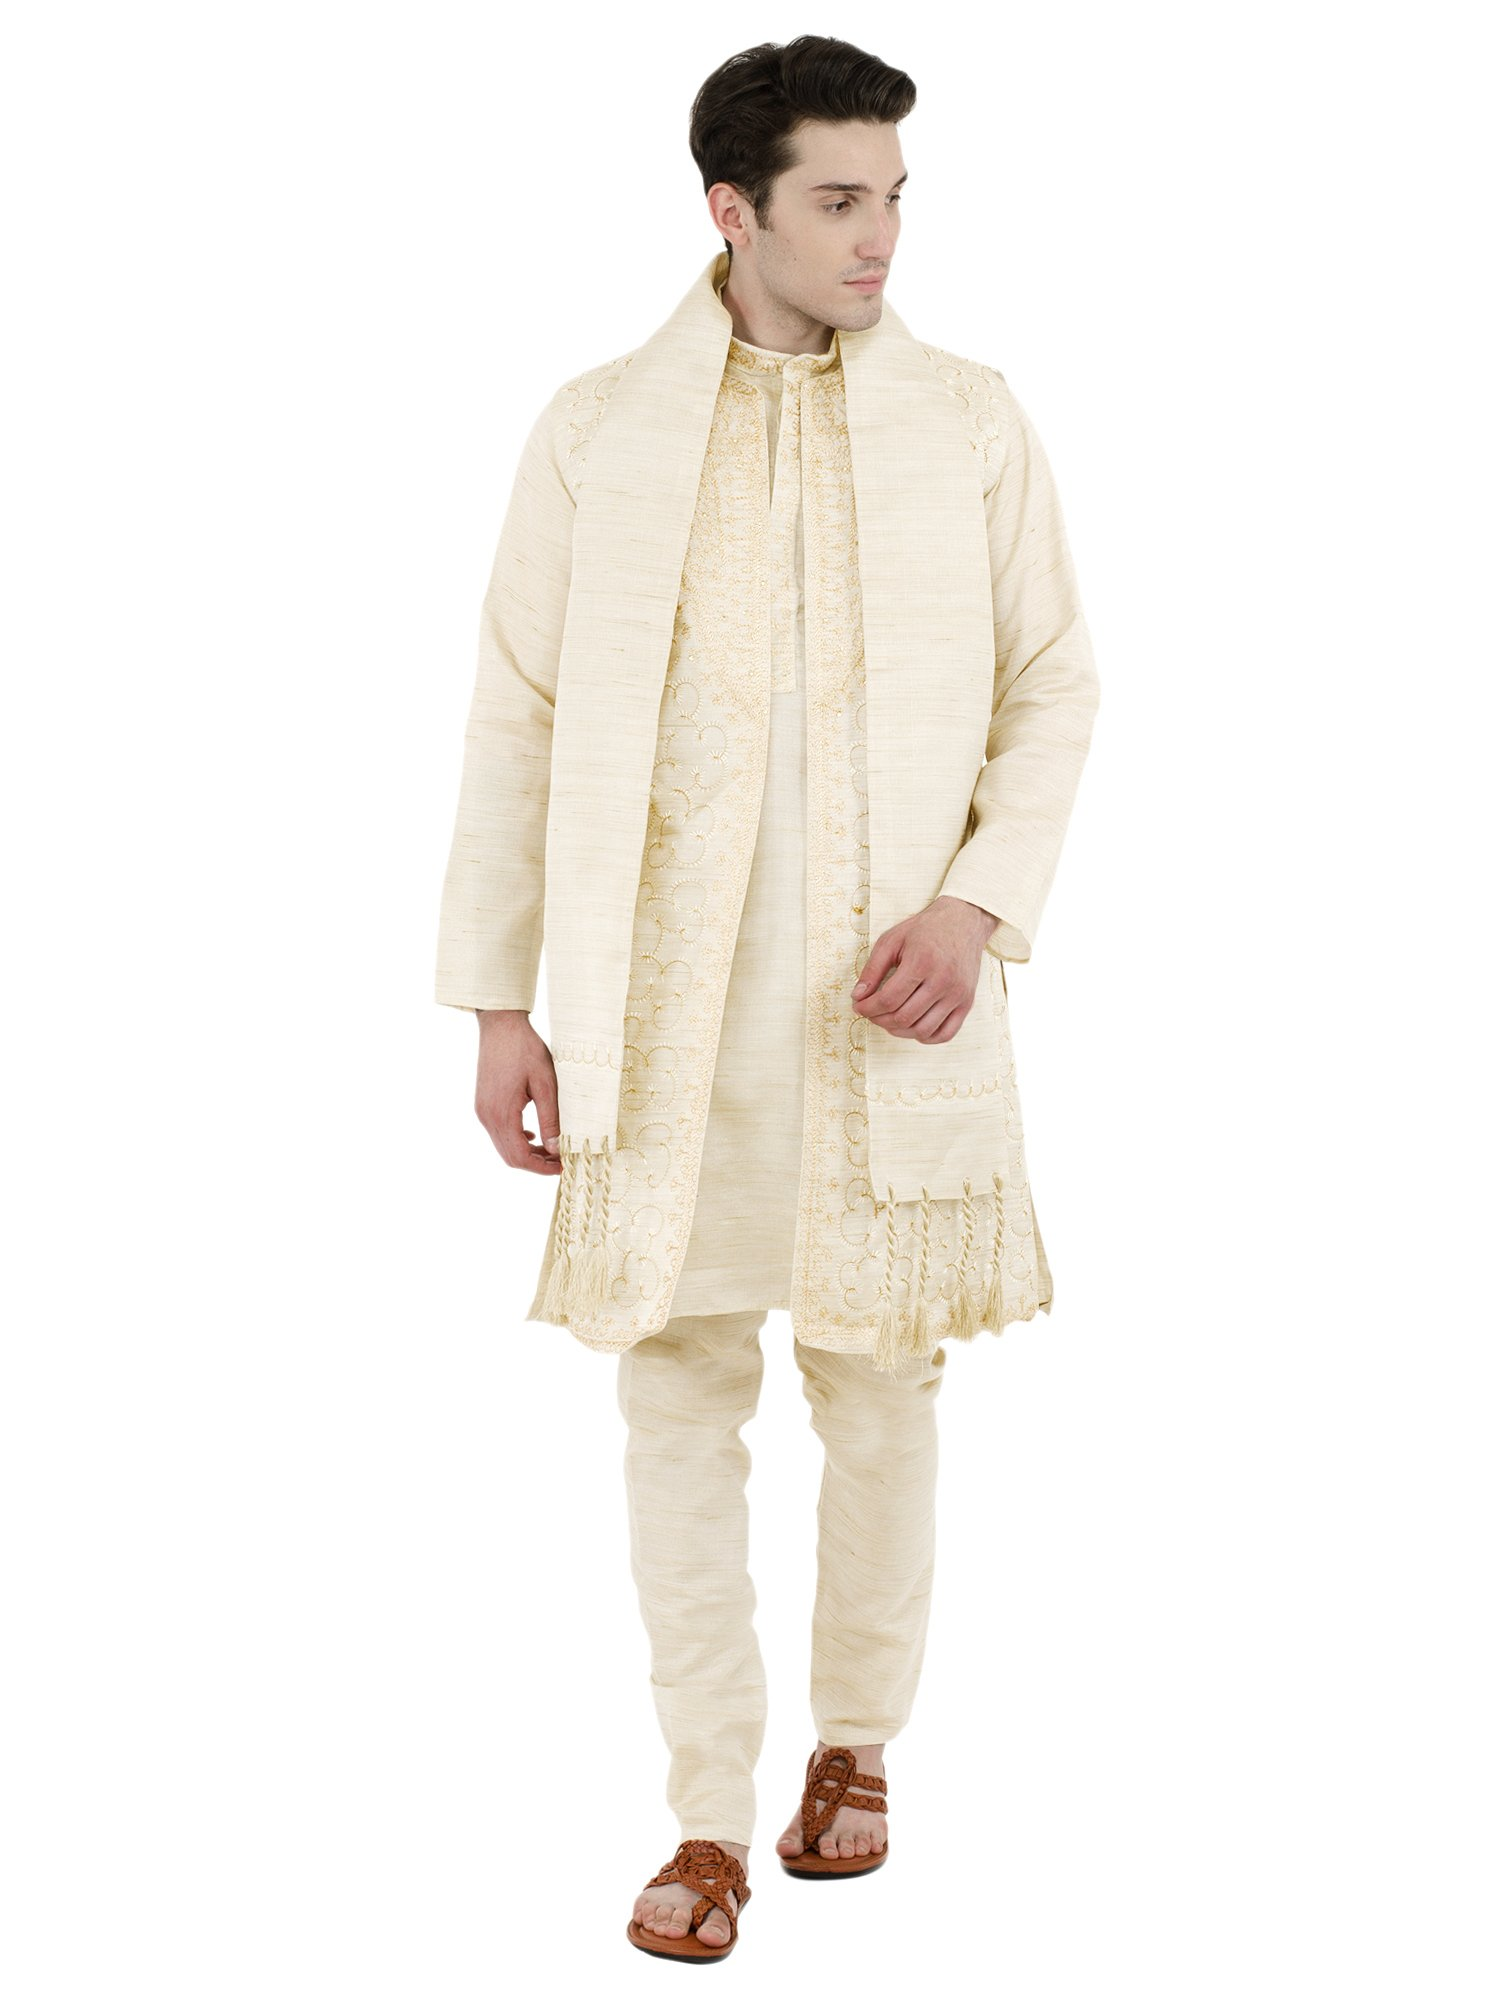 Trendy Kurta Pajama Sherwani Stole Set Indian Mens Fashion Dress Bollywood Style 4-Pieces -L